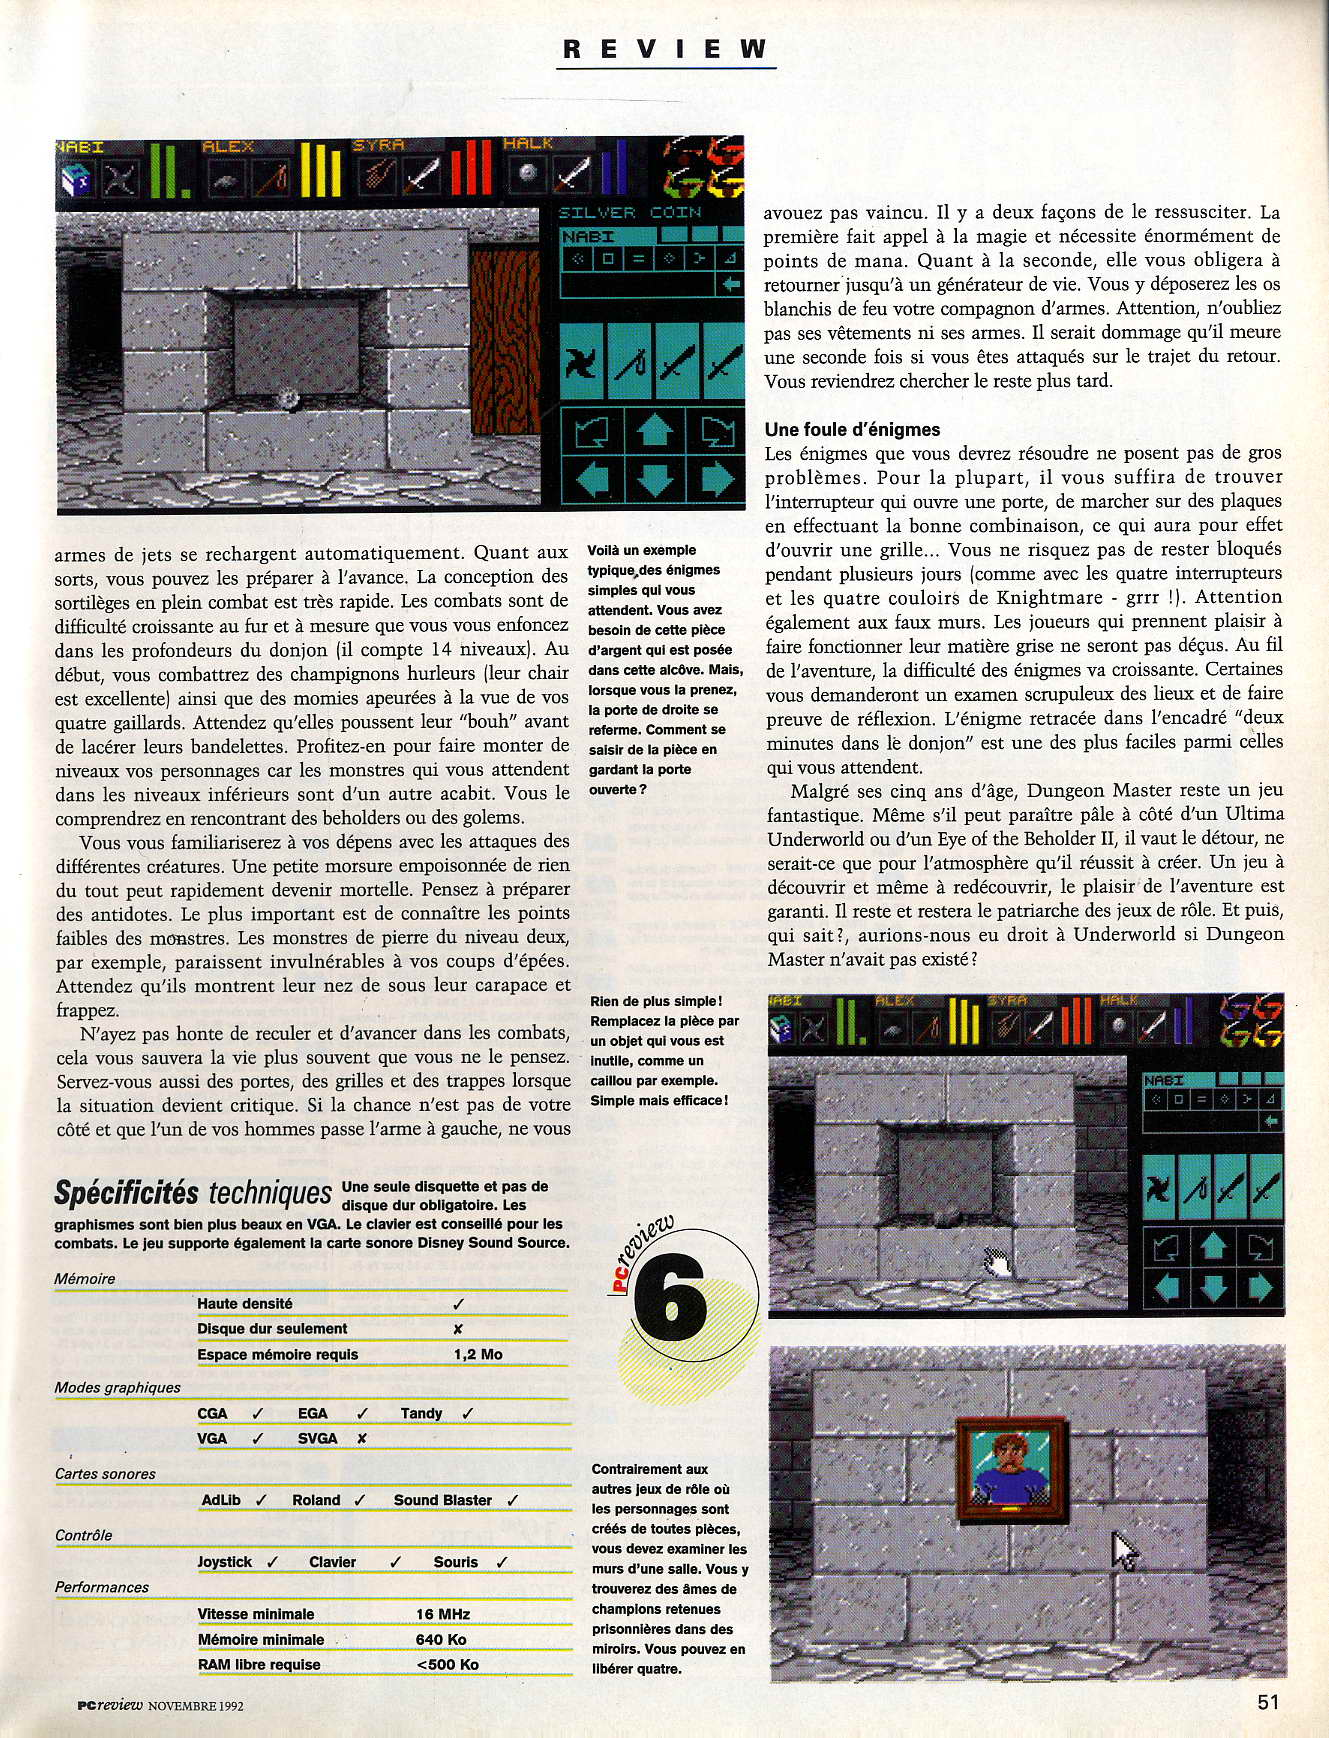 Dungeon Master for PC Review published in French magazine 'PC Review', Issue #2 November 1992, Page 51